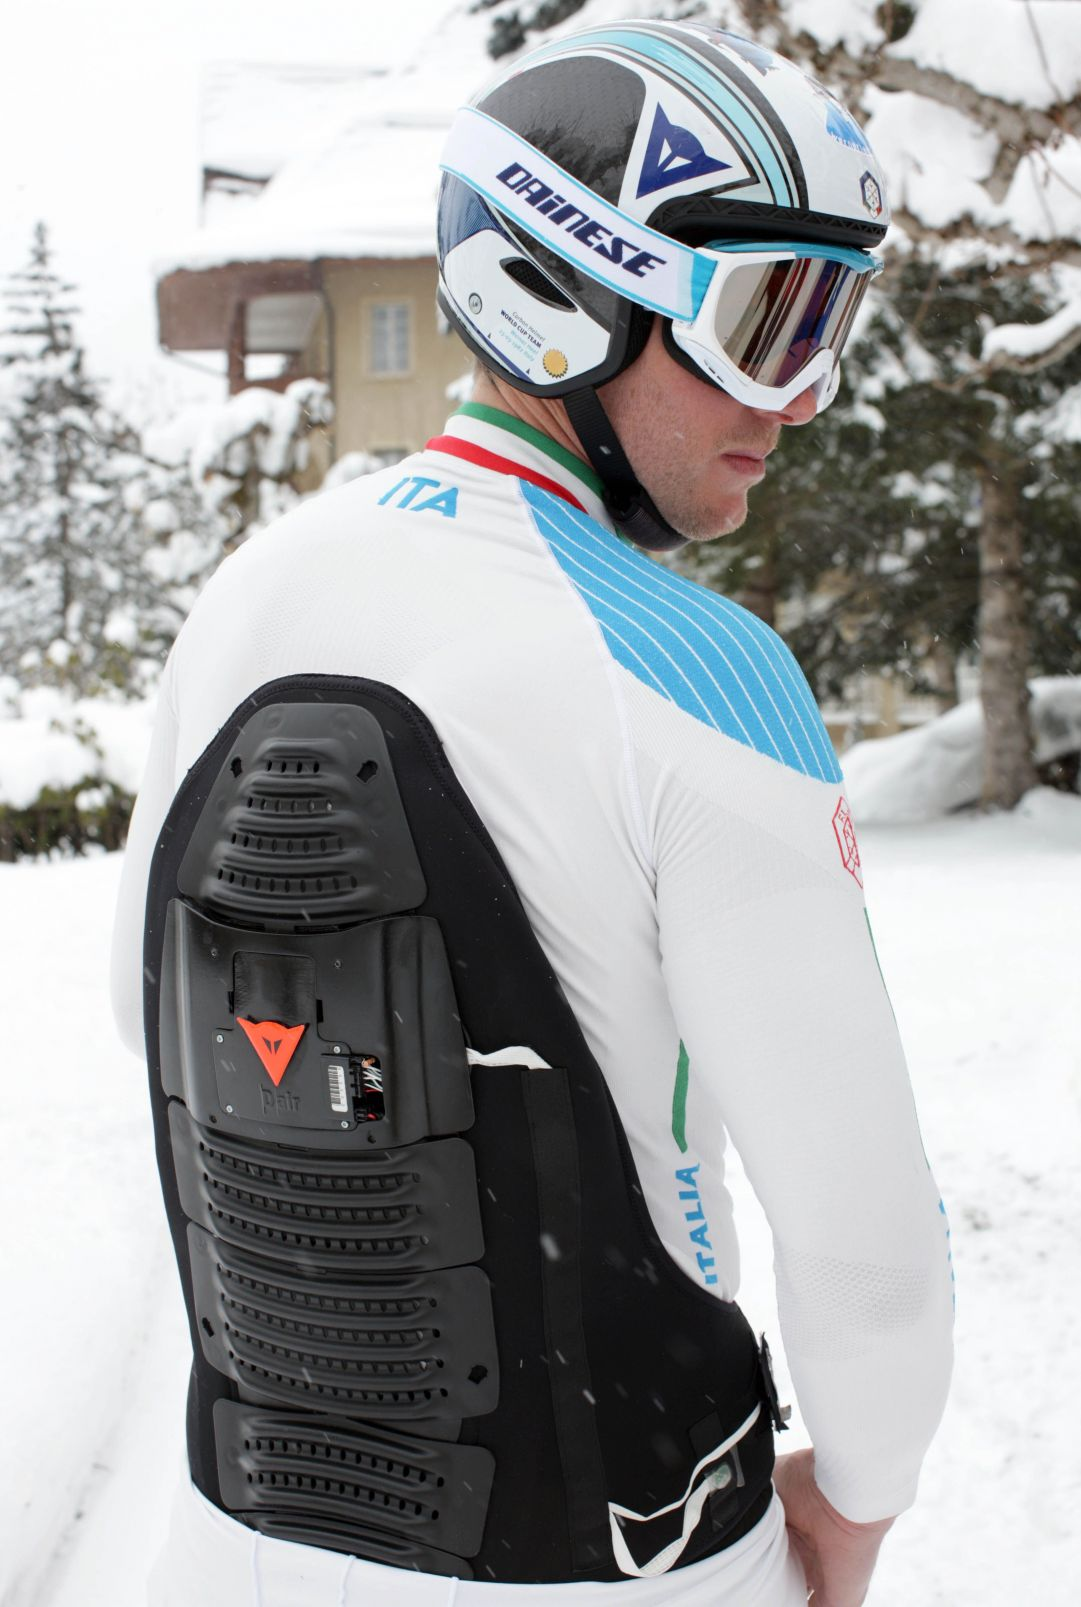 back protector with inertial platform